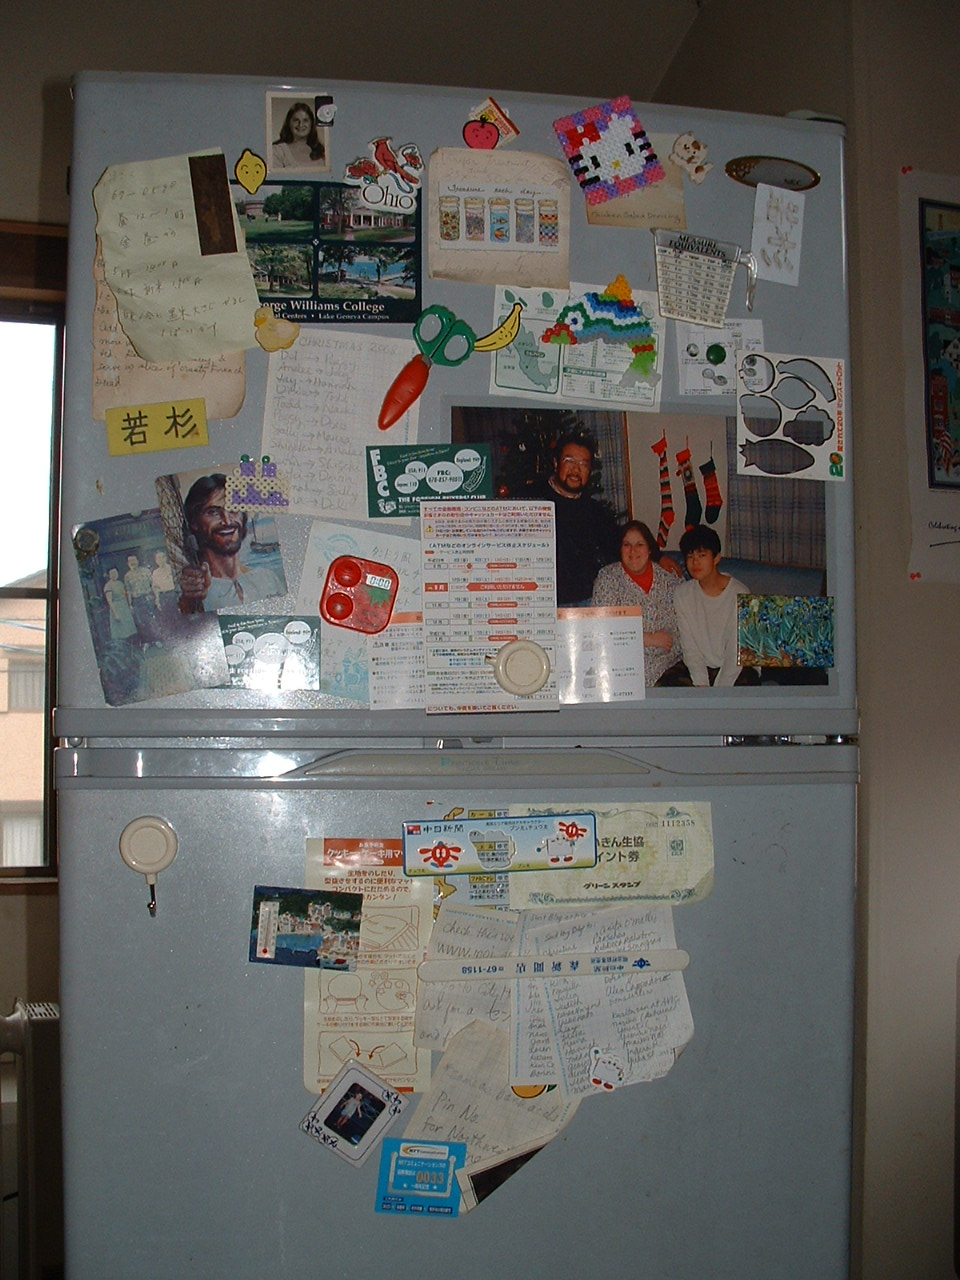 [the+old+fridge]